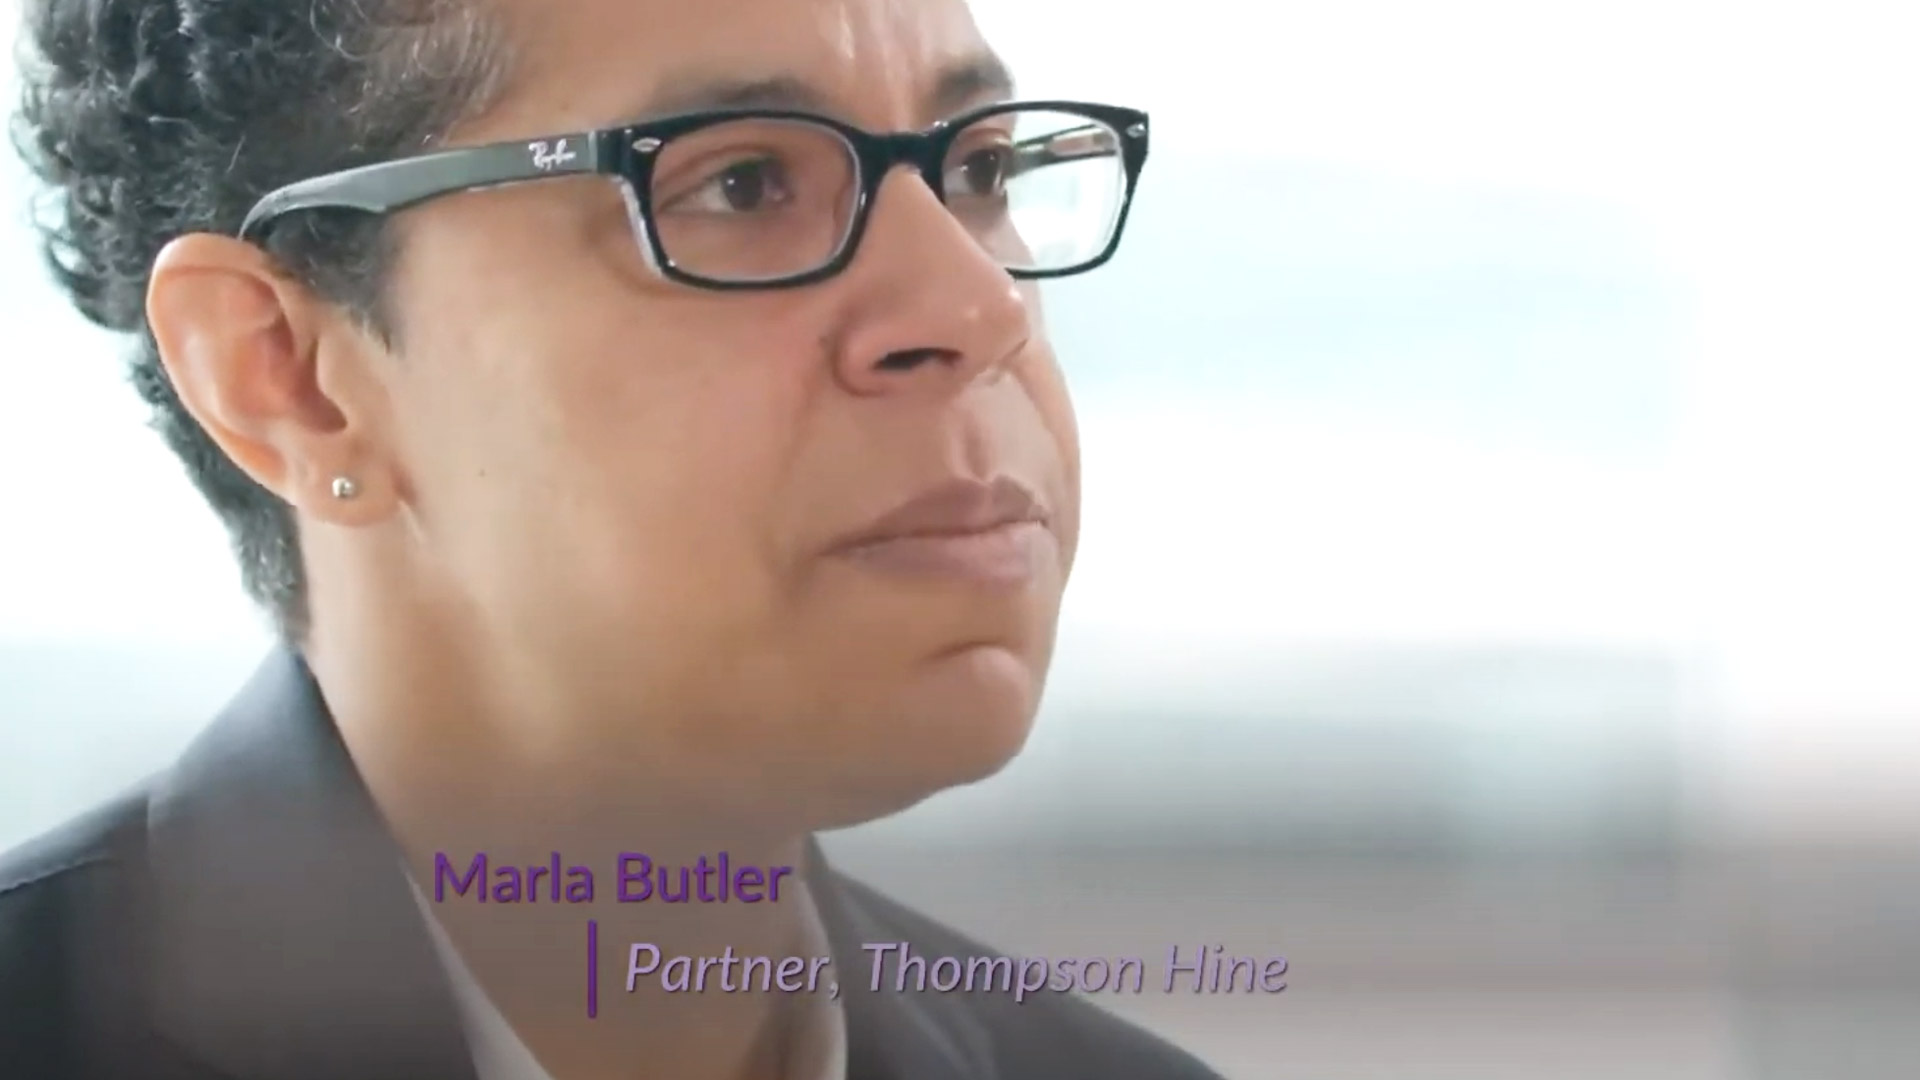 Marla Butler on Diversity, Equity and Inclusion and the Lavender Law 365® Program